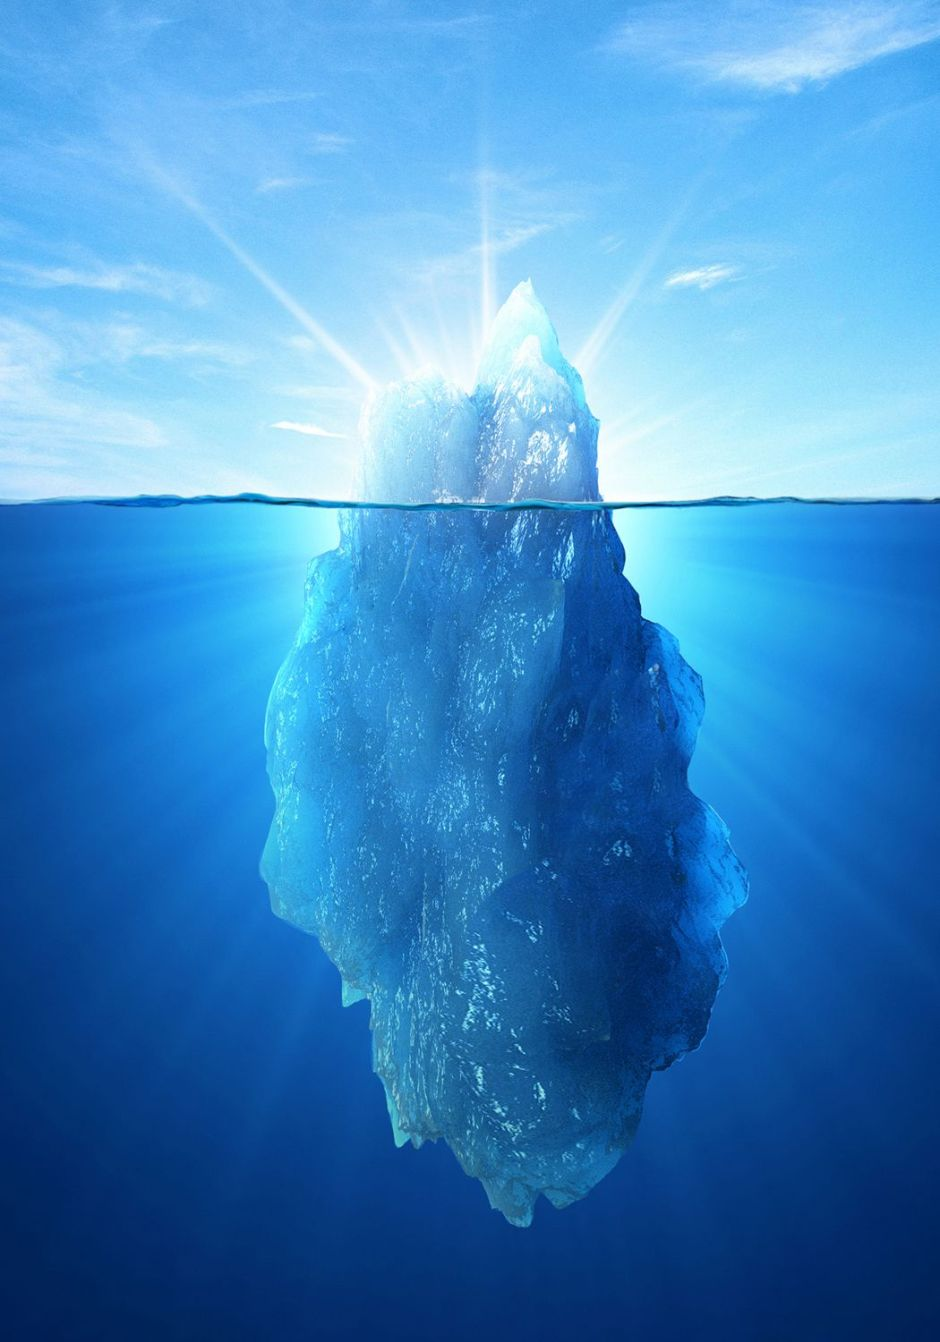 Iceberg illustration by Zina Deretsky, National Science Foundation